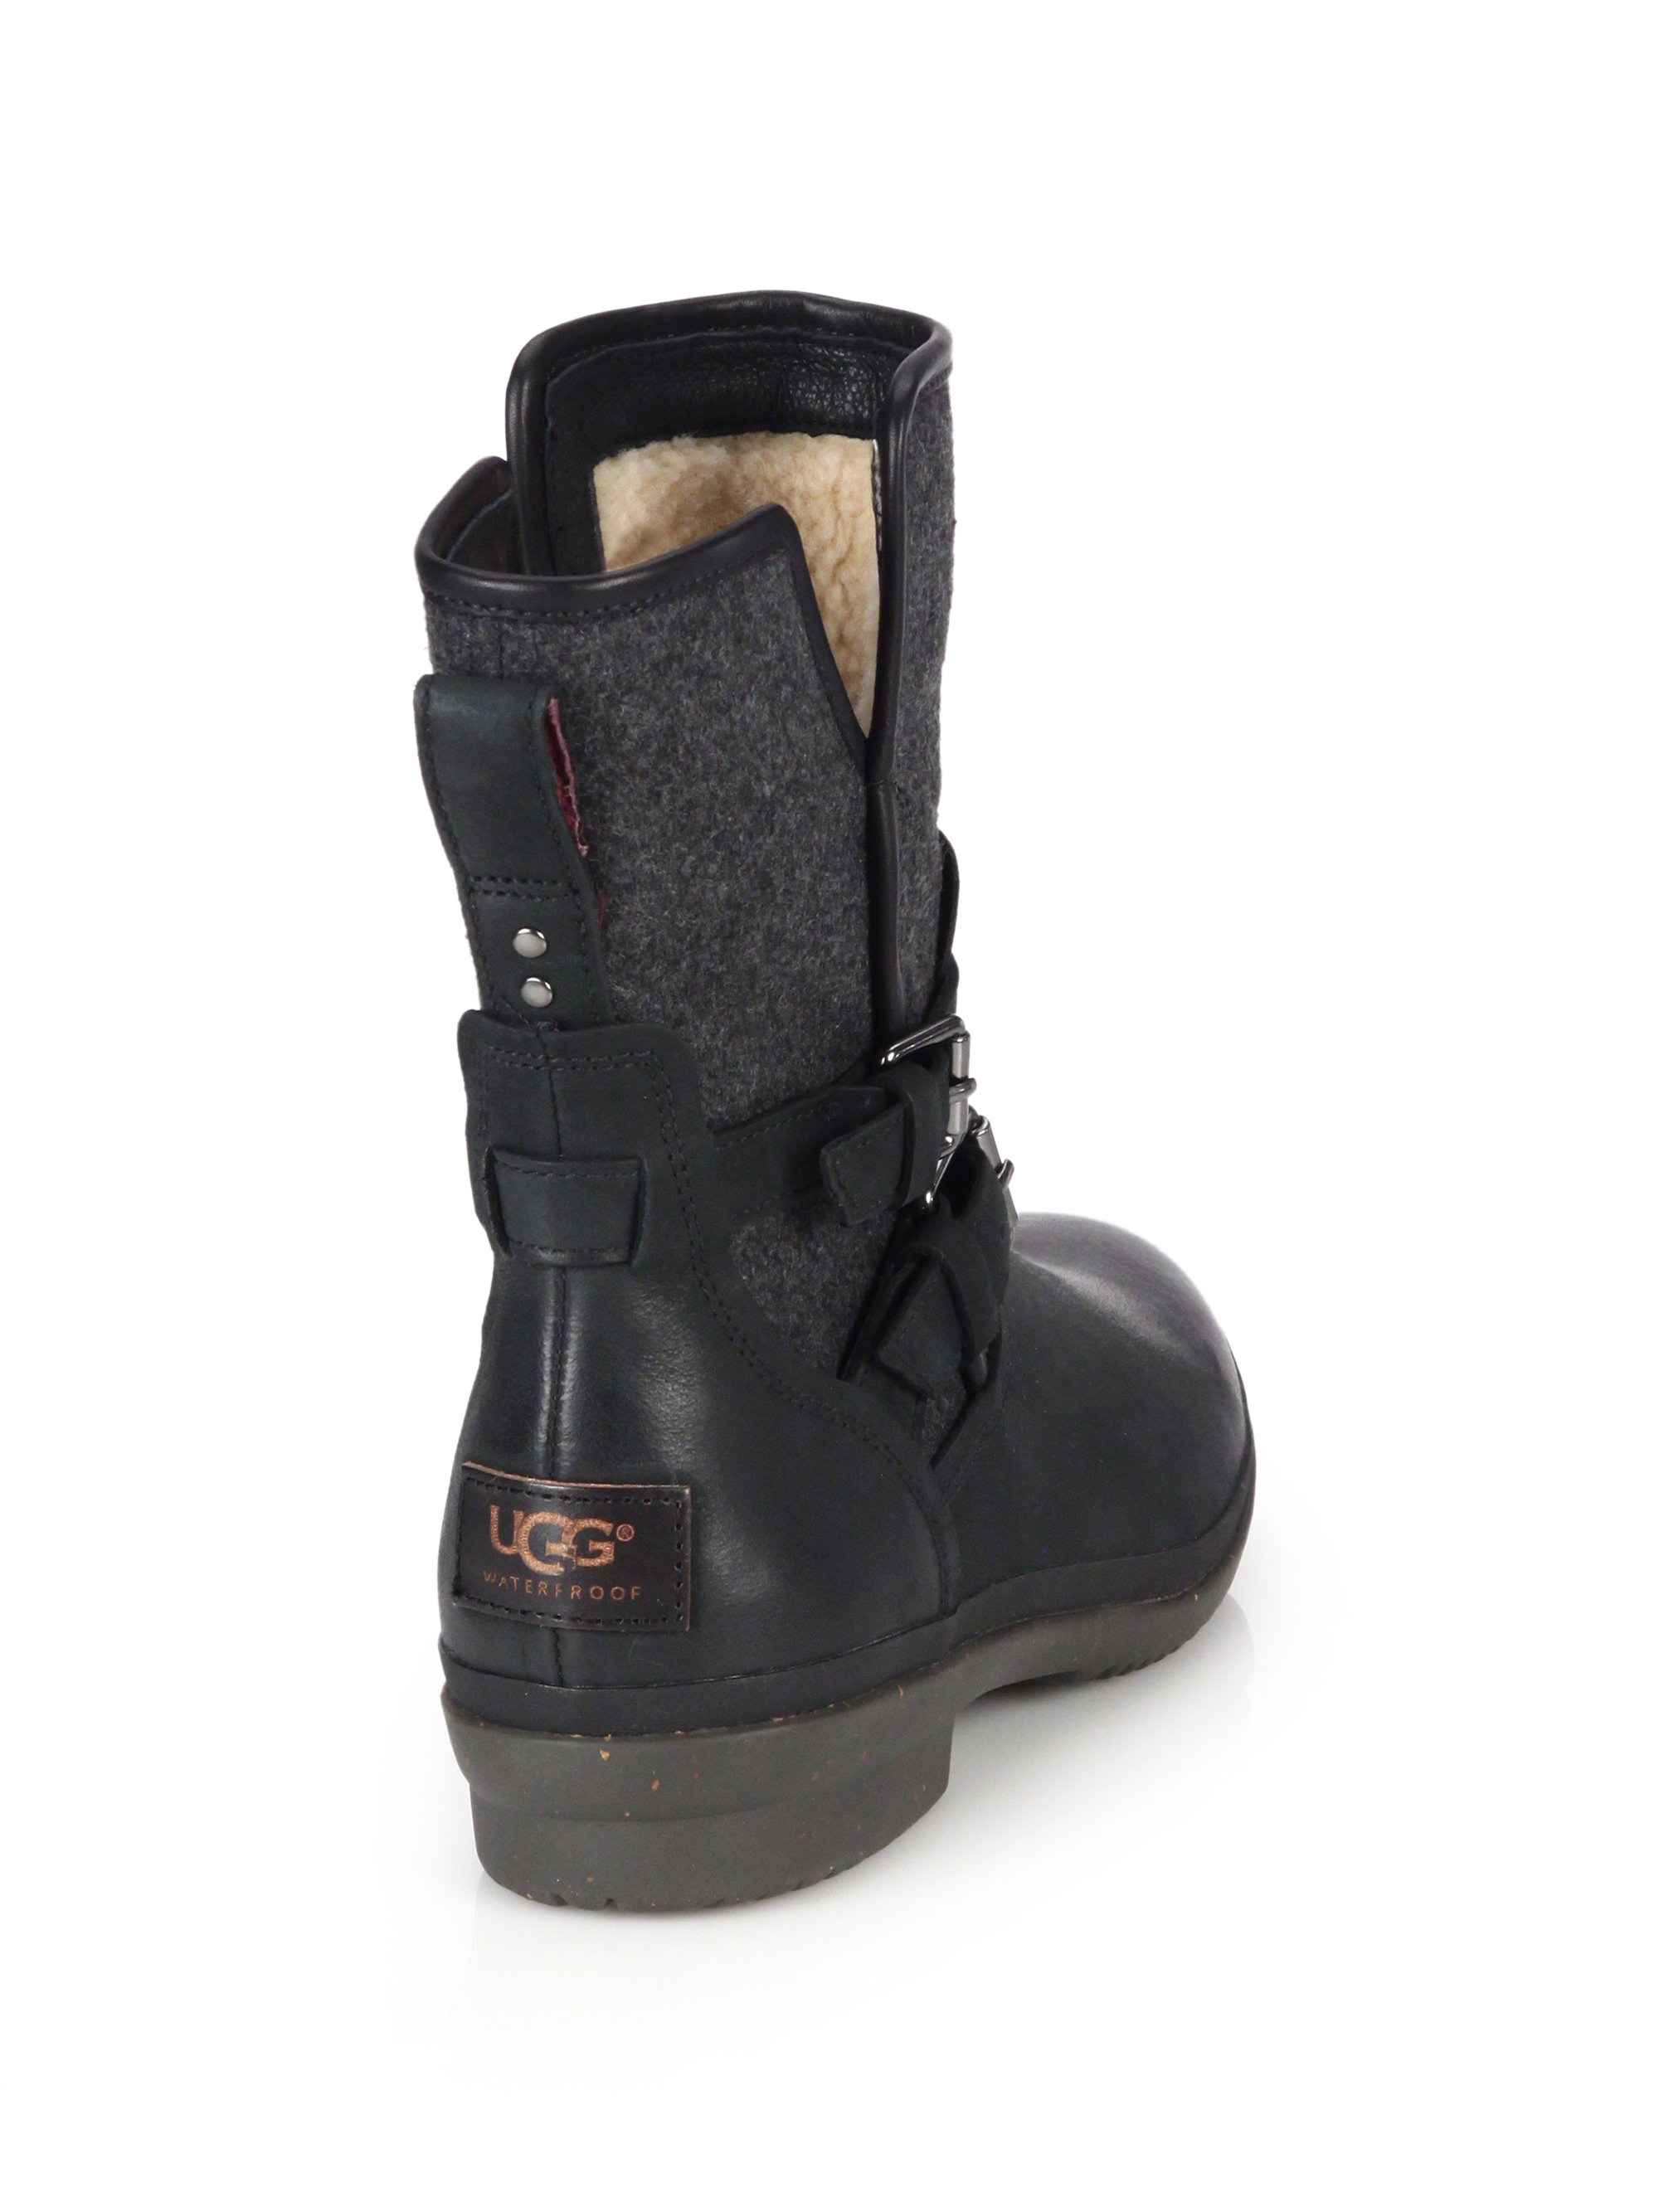 dcccd7877e9 UGG Black Simmens Leather & Felt Shearling-lined Boots